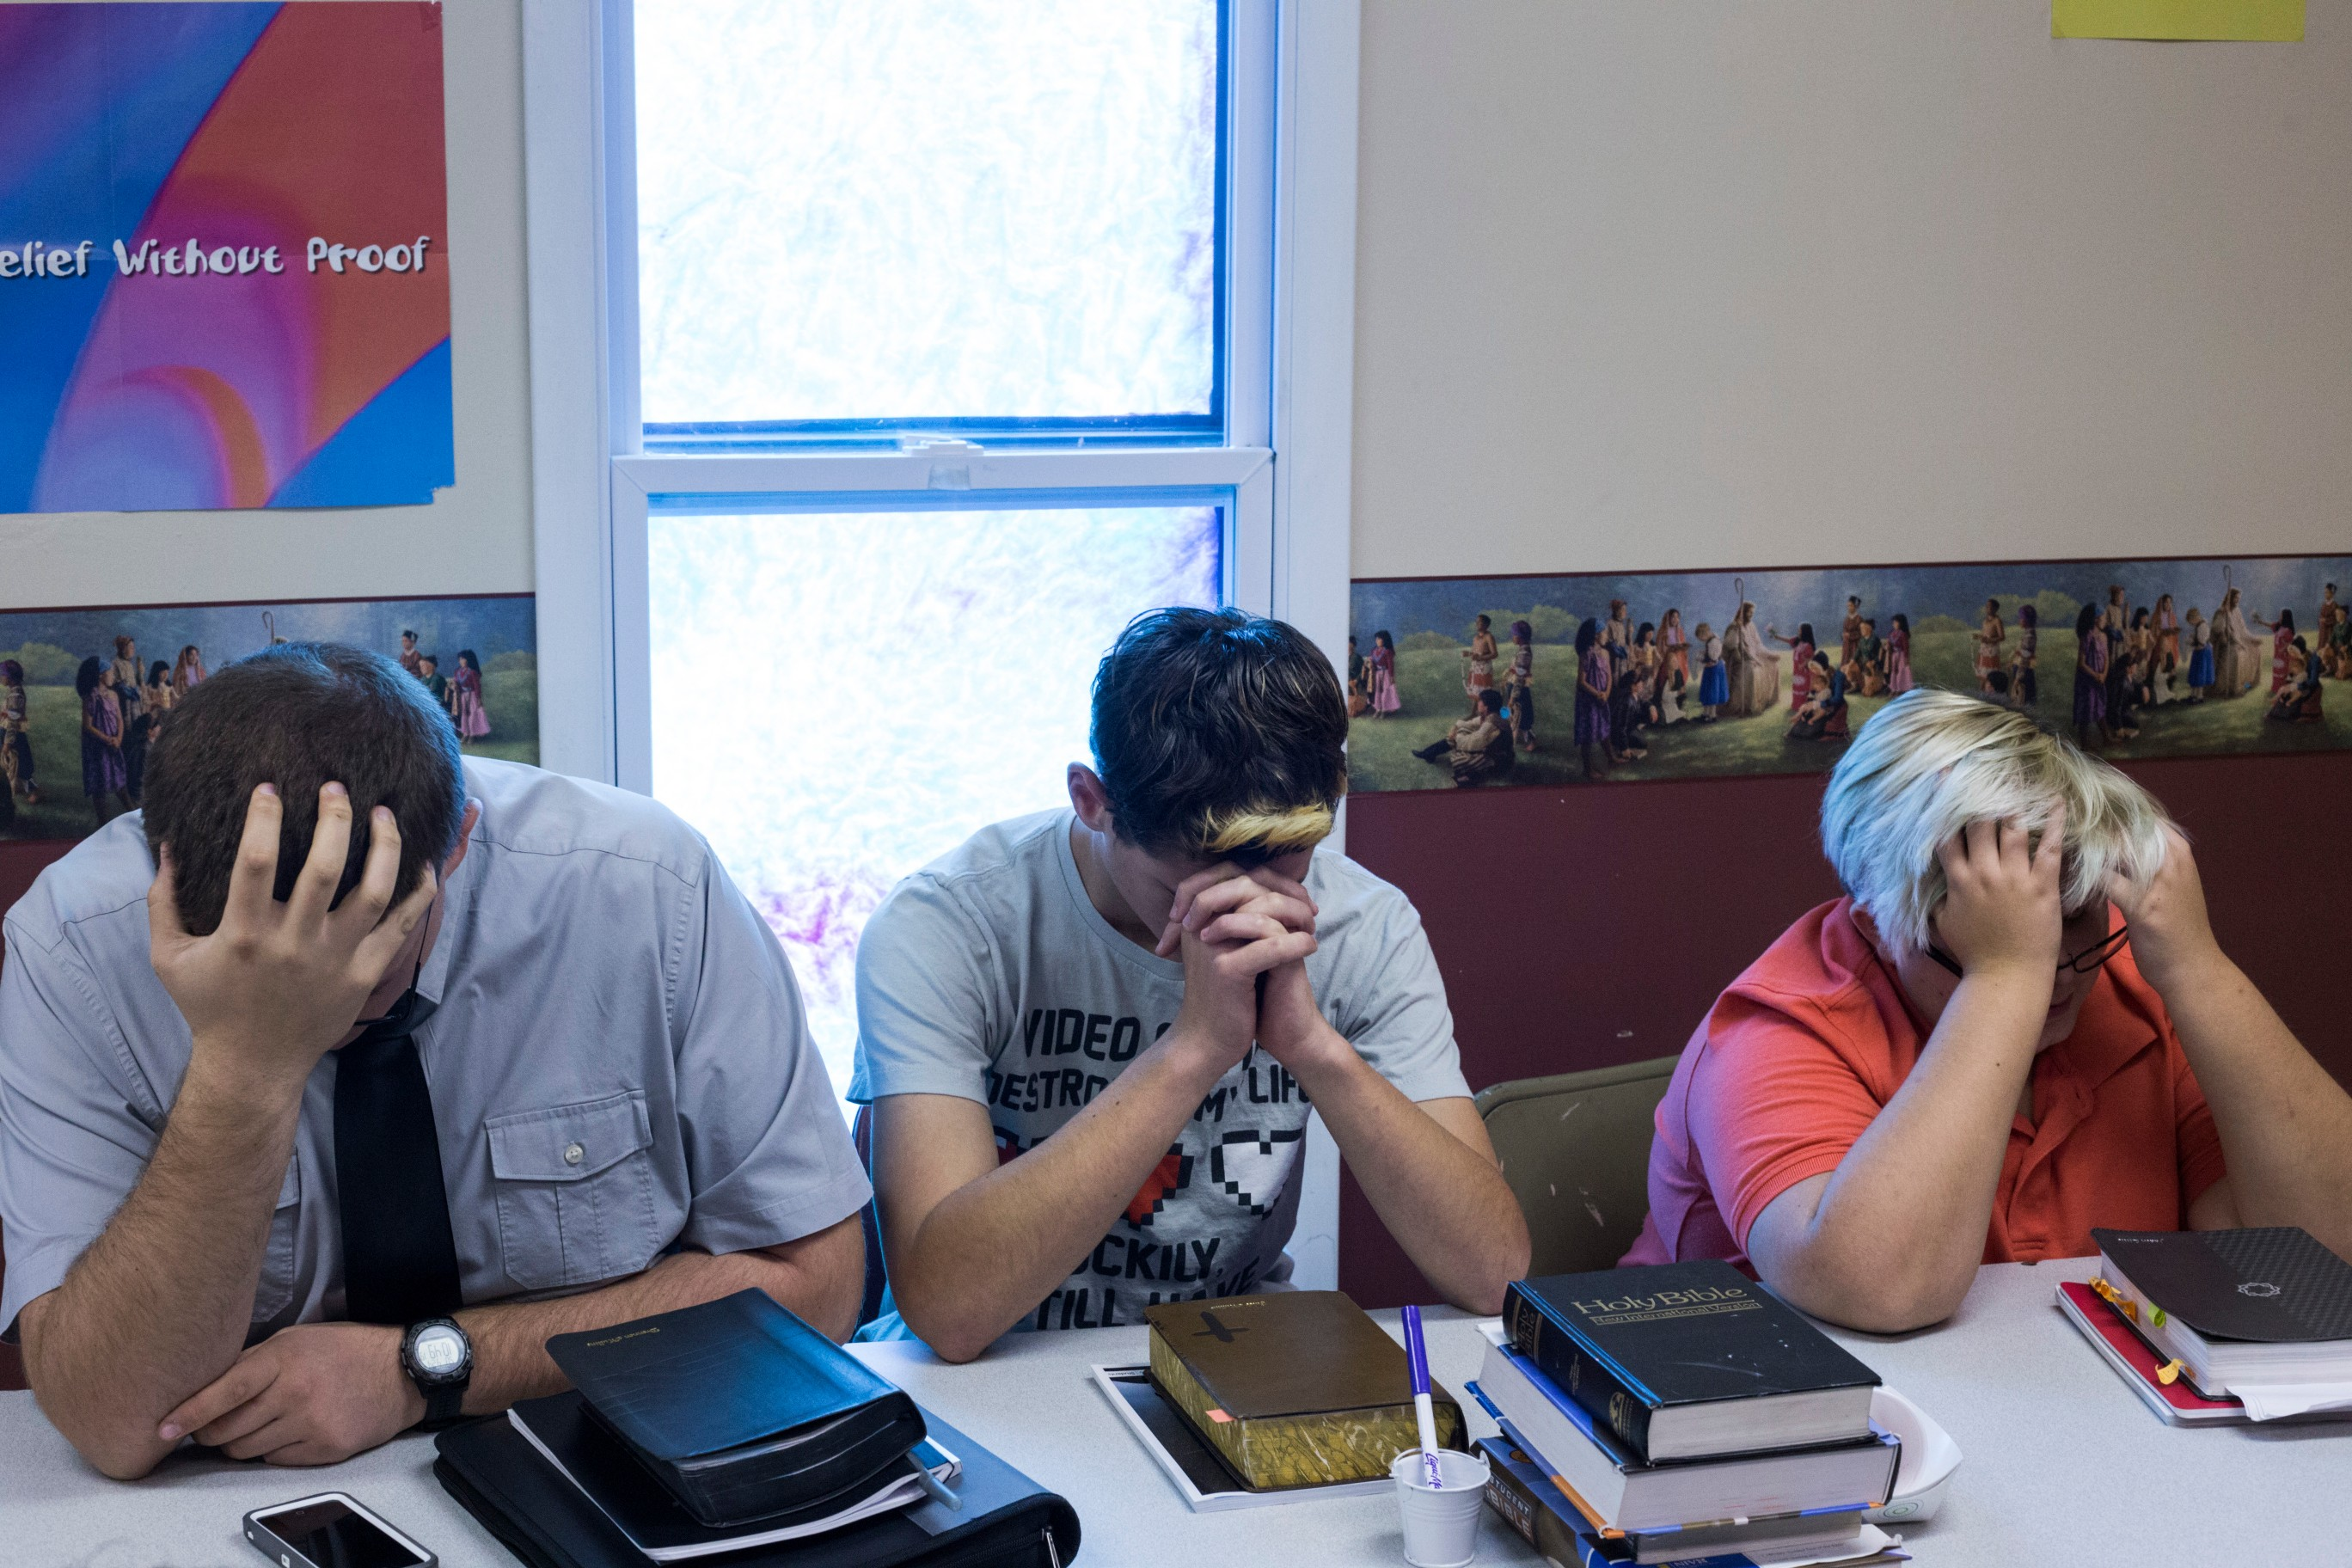 Students bow their heads to pray during Sunday school at the First Baptist Church in McDowell, Ky., on Sunday, September 24, 2017. (Photo by Brittany Greeson/GroundTruth)